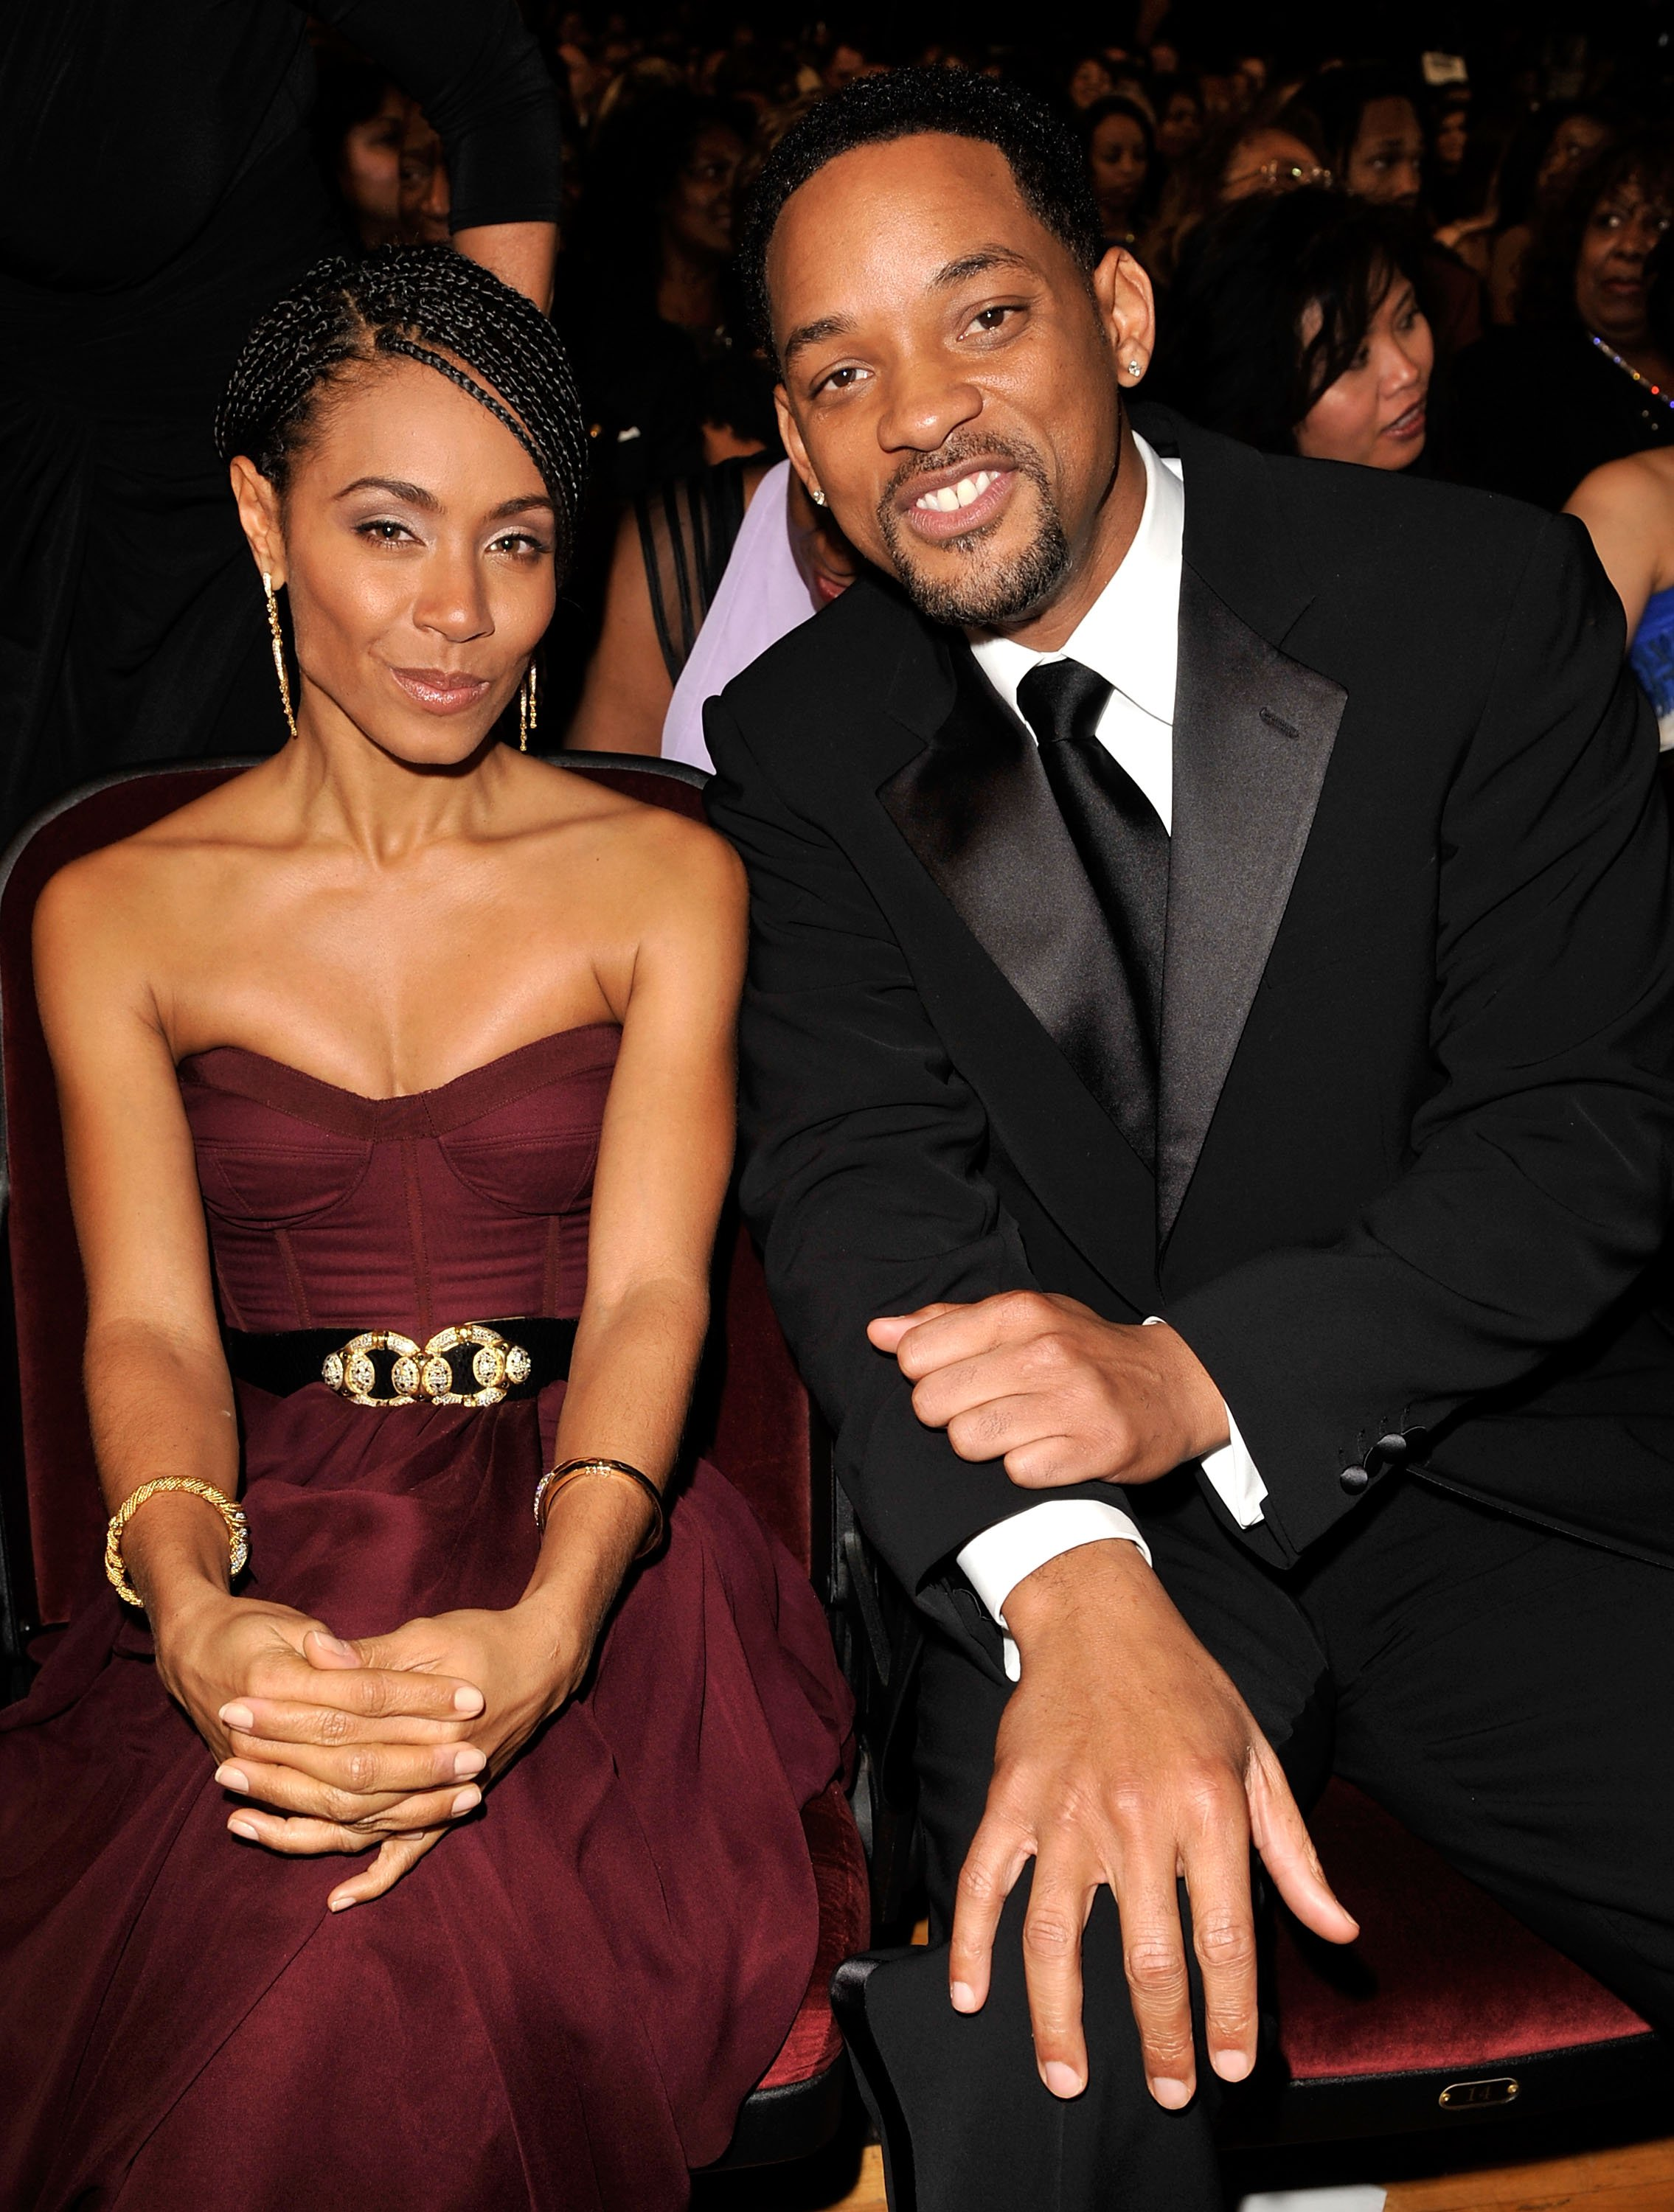 Image Credits: Getty Images | Will and Jada Smith have been together for more than 20 years